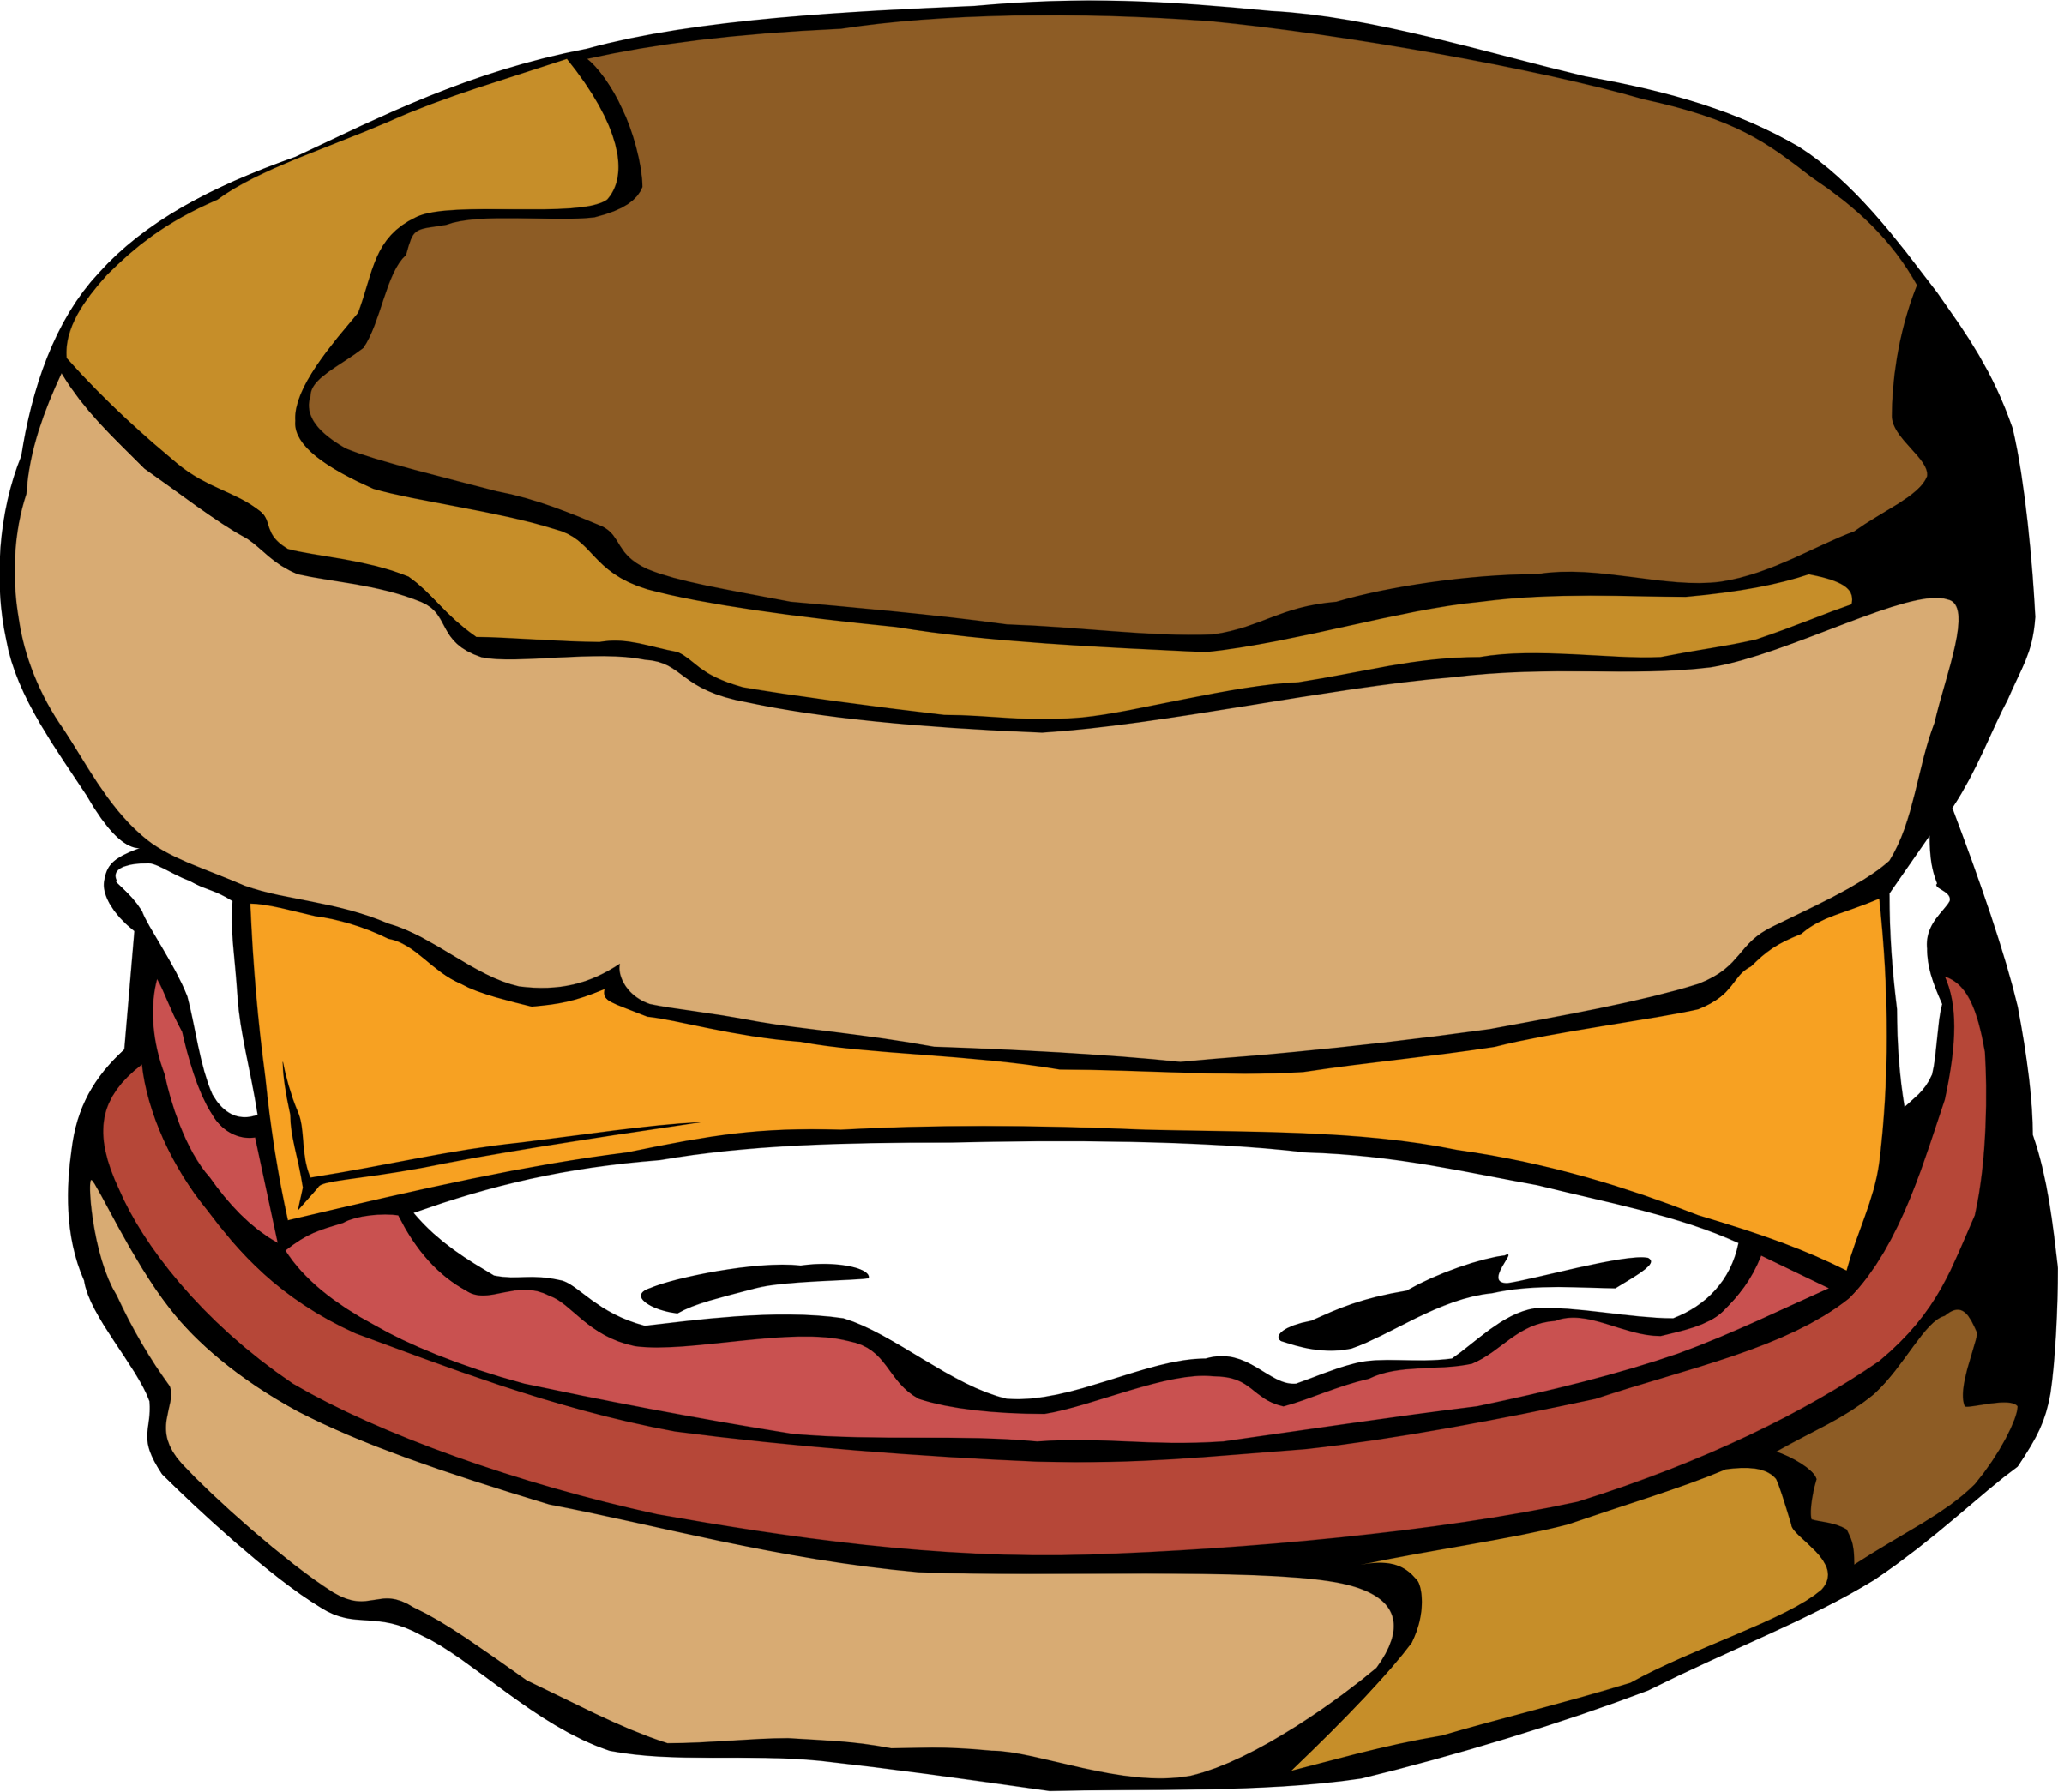 Muffin clipart junk food Egg Food Muffin Food Fast